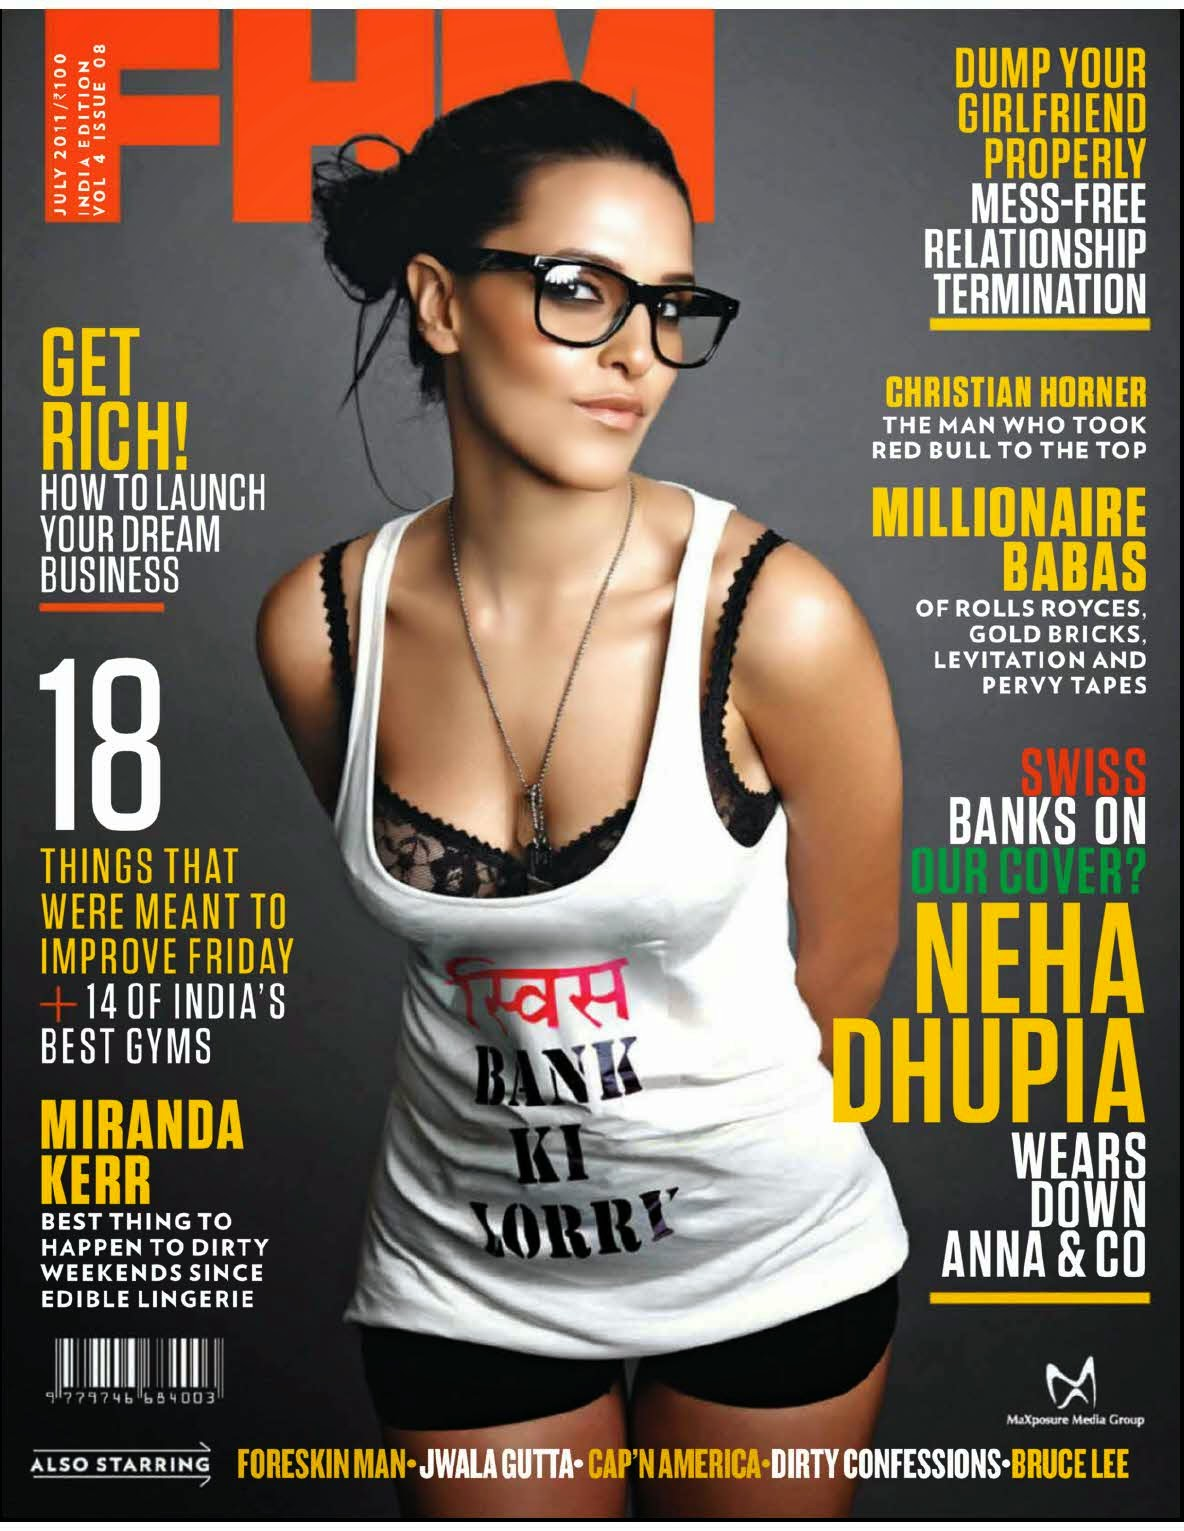 Neha Dhupia on FHM India July 2011 Magazine Cover